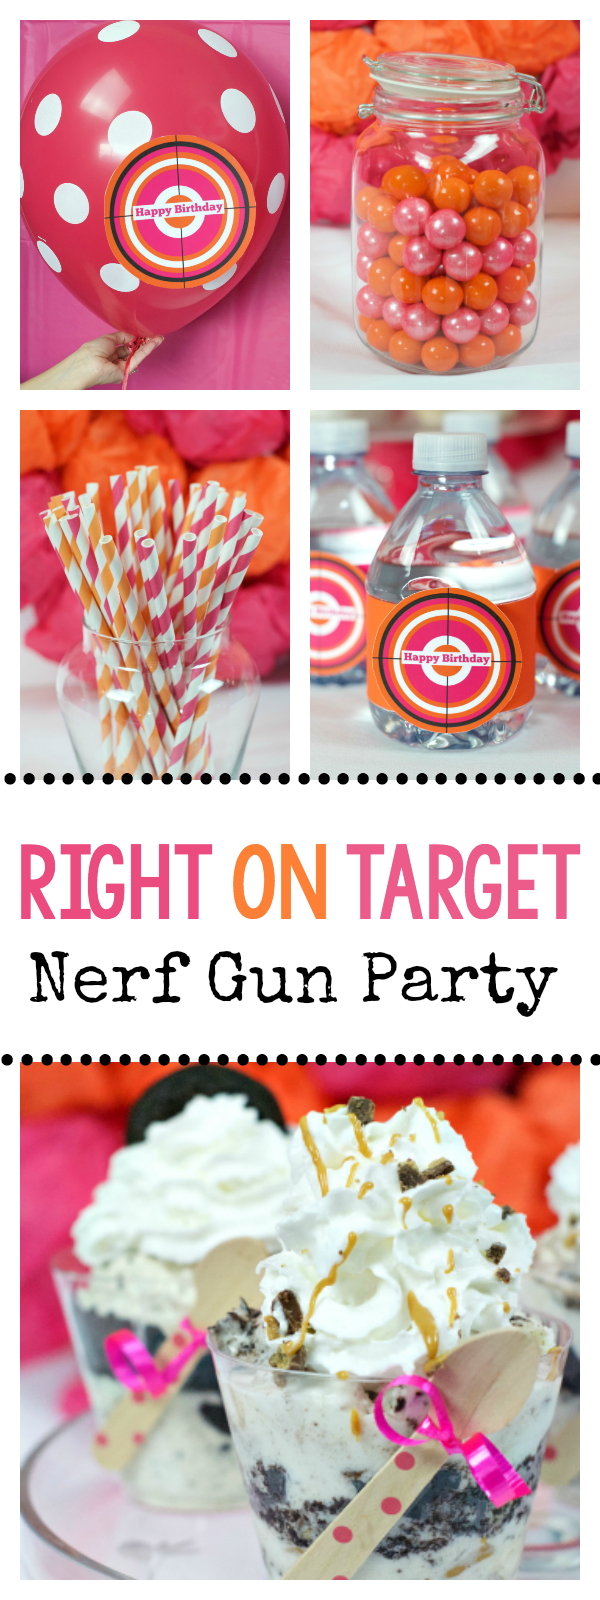 Right on Target Nerf Gun Party Idea-Great for Teens and Tweens!